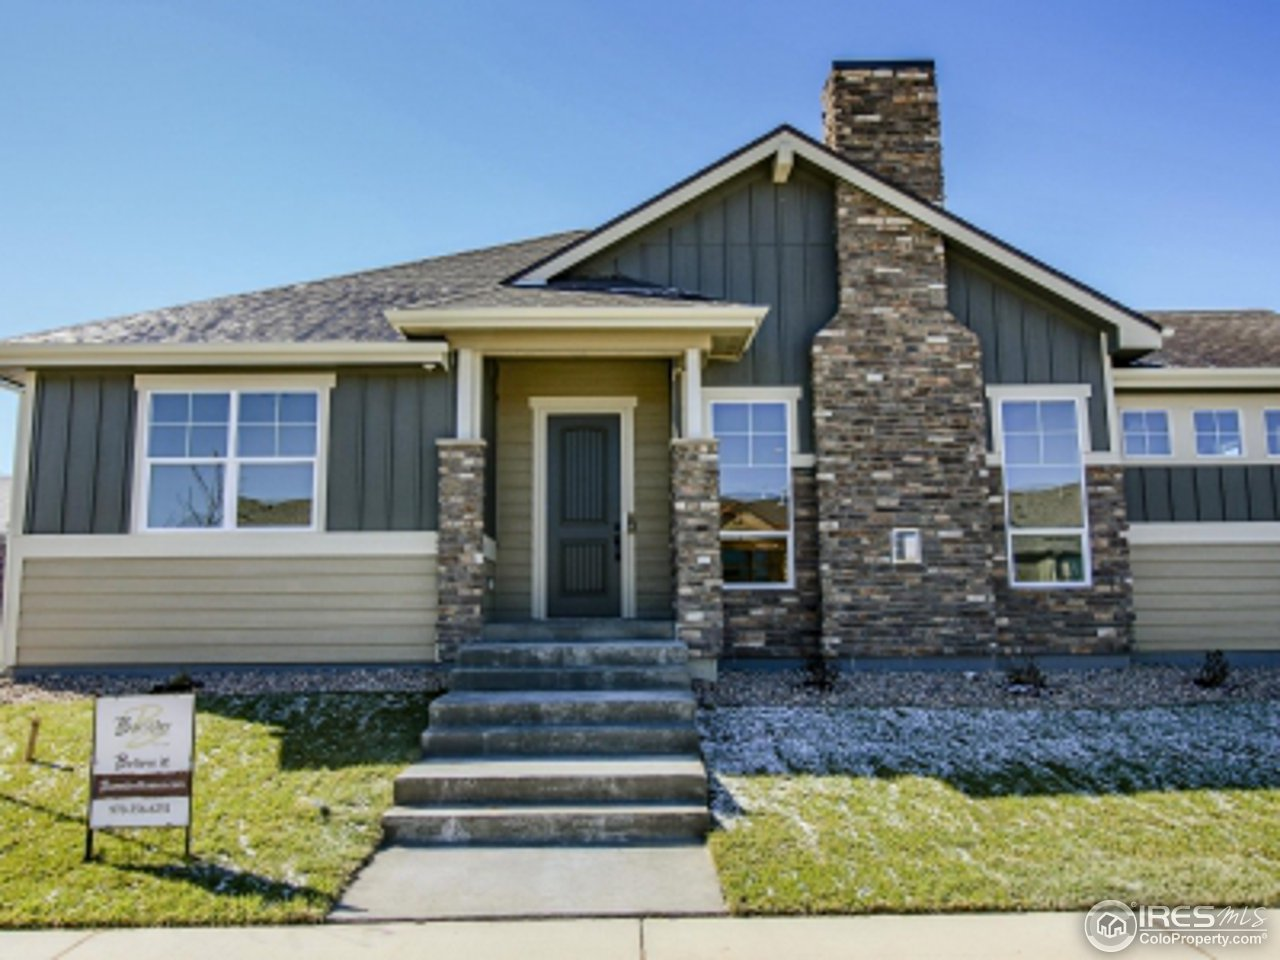 3550 Prickly Pear Dr, Loveland, CO 80537